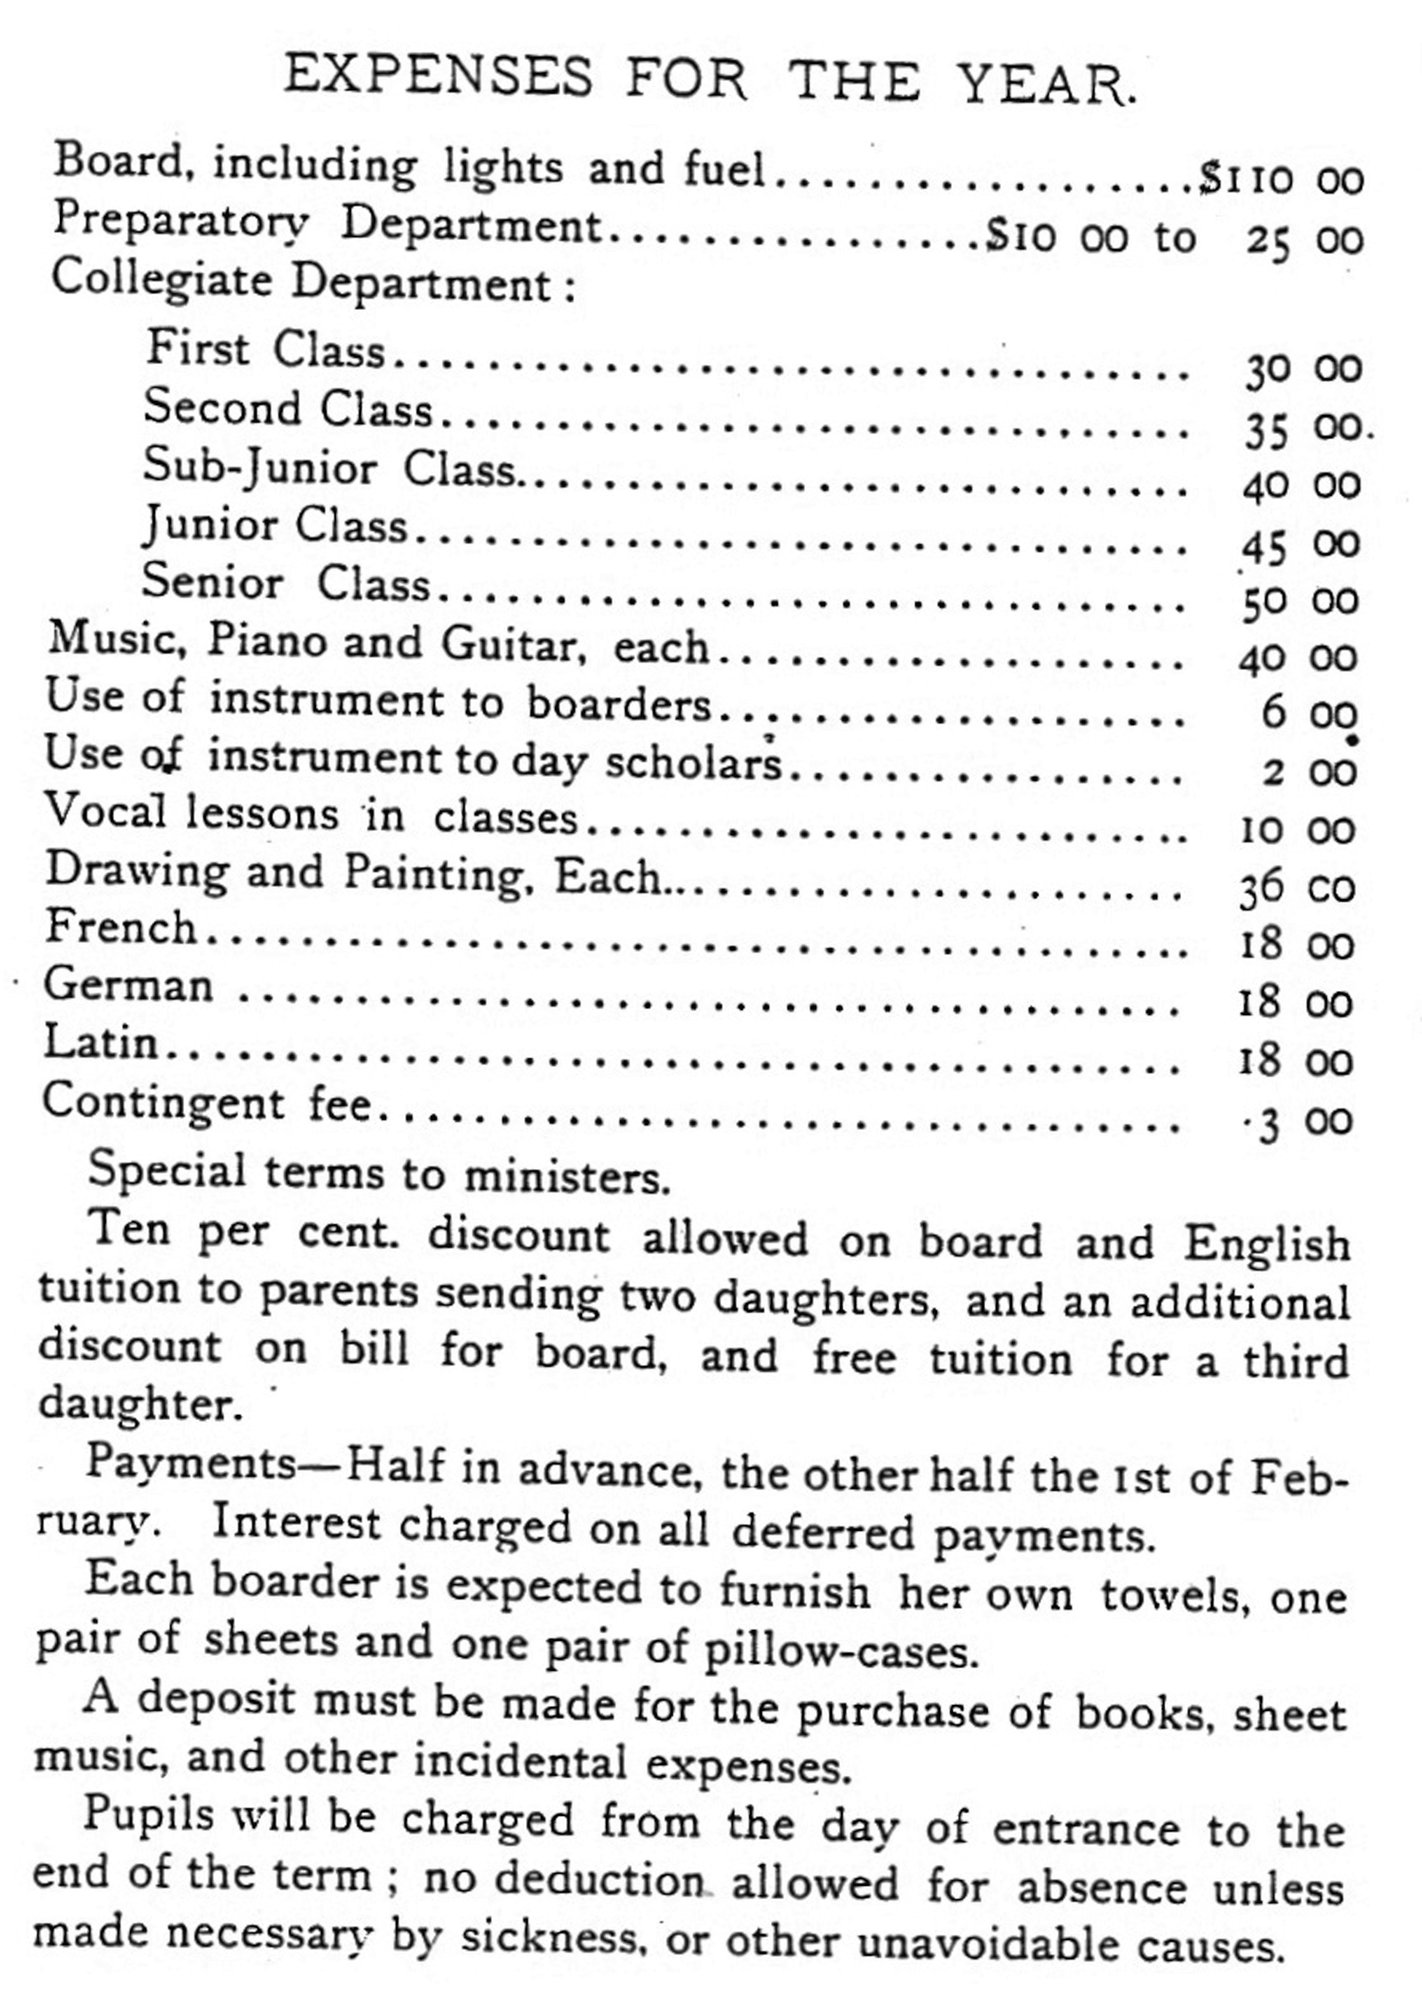 These were the costs to attend Sumter Female Institute.